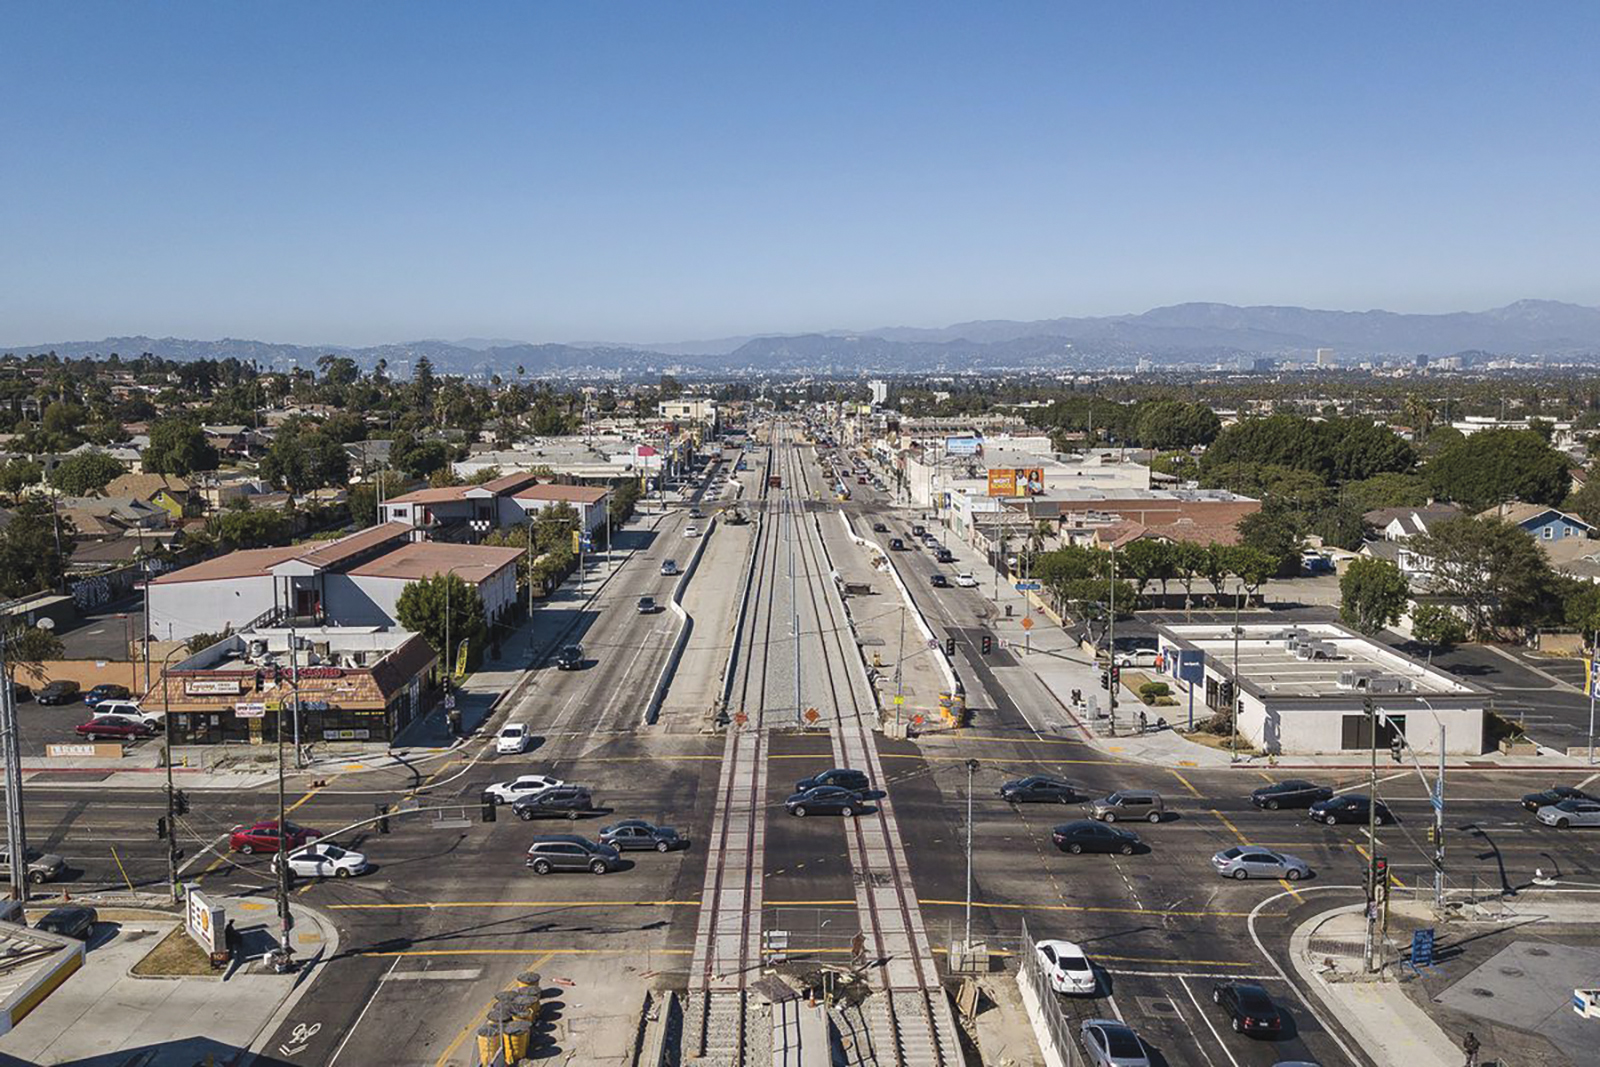 Looking north at the intersection of Crenshaw and Slauson, which will be renamed Nipsey Hussle Square. Out of view on the southwest corner is the strip mall Hussle purchased in February. (Sterling Davis photo)